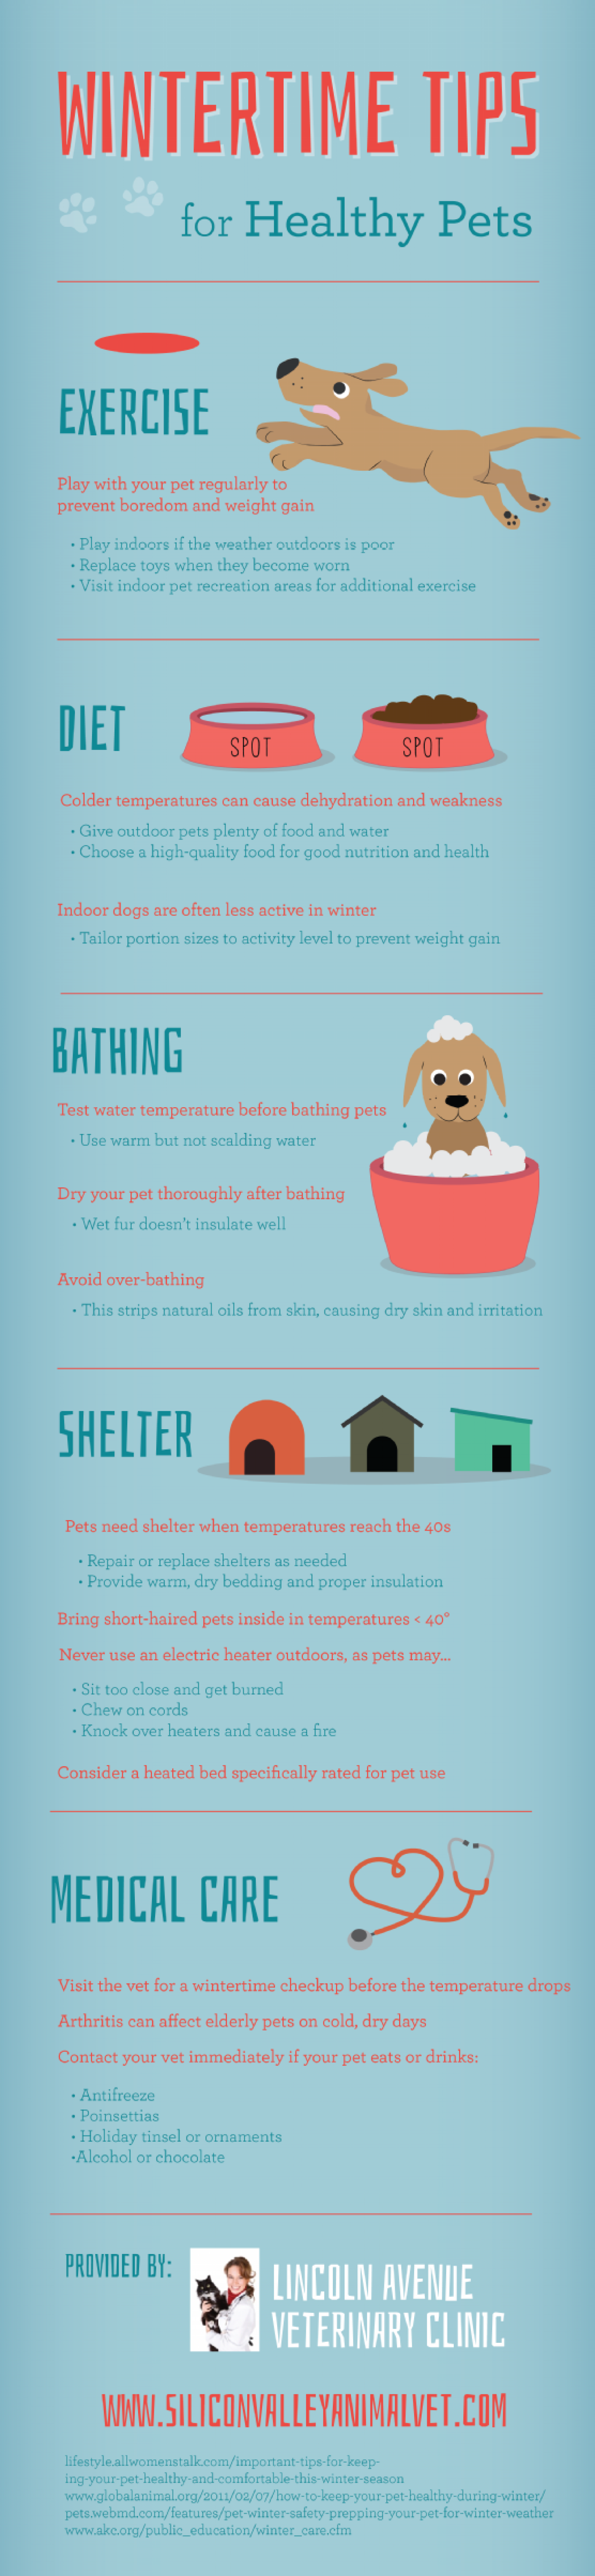 Wintertime Tips for Healthy Pets Infographic